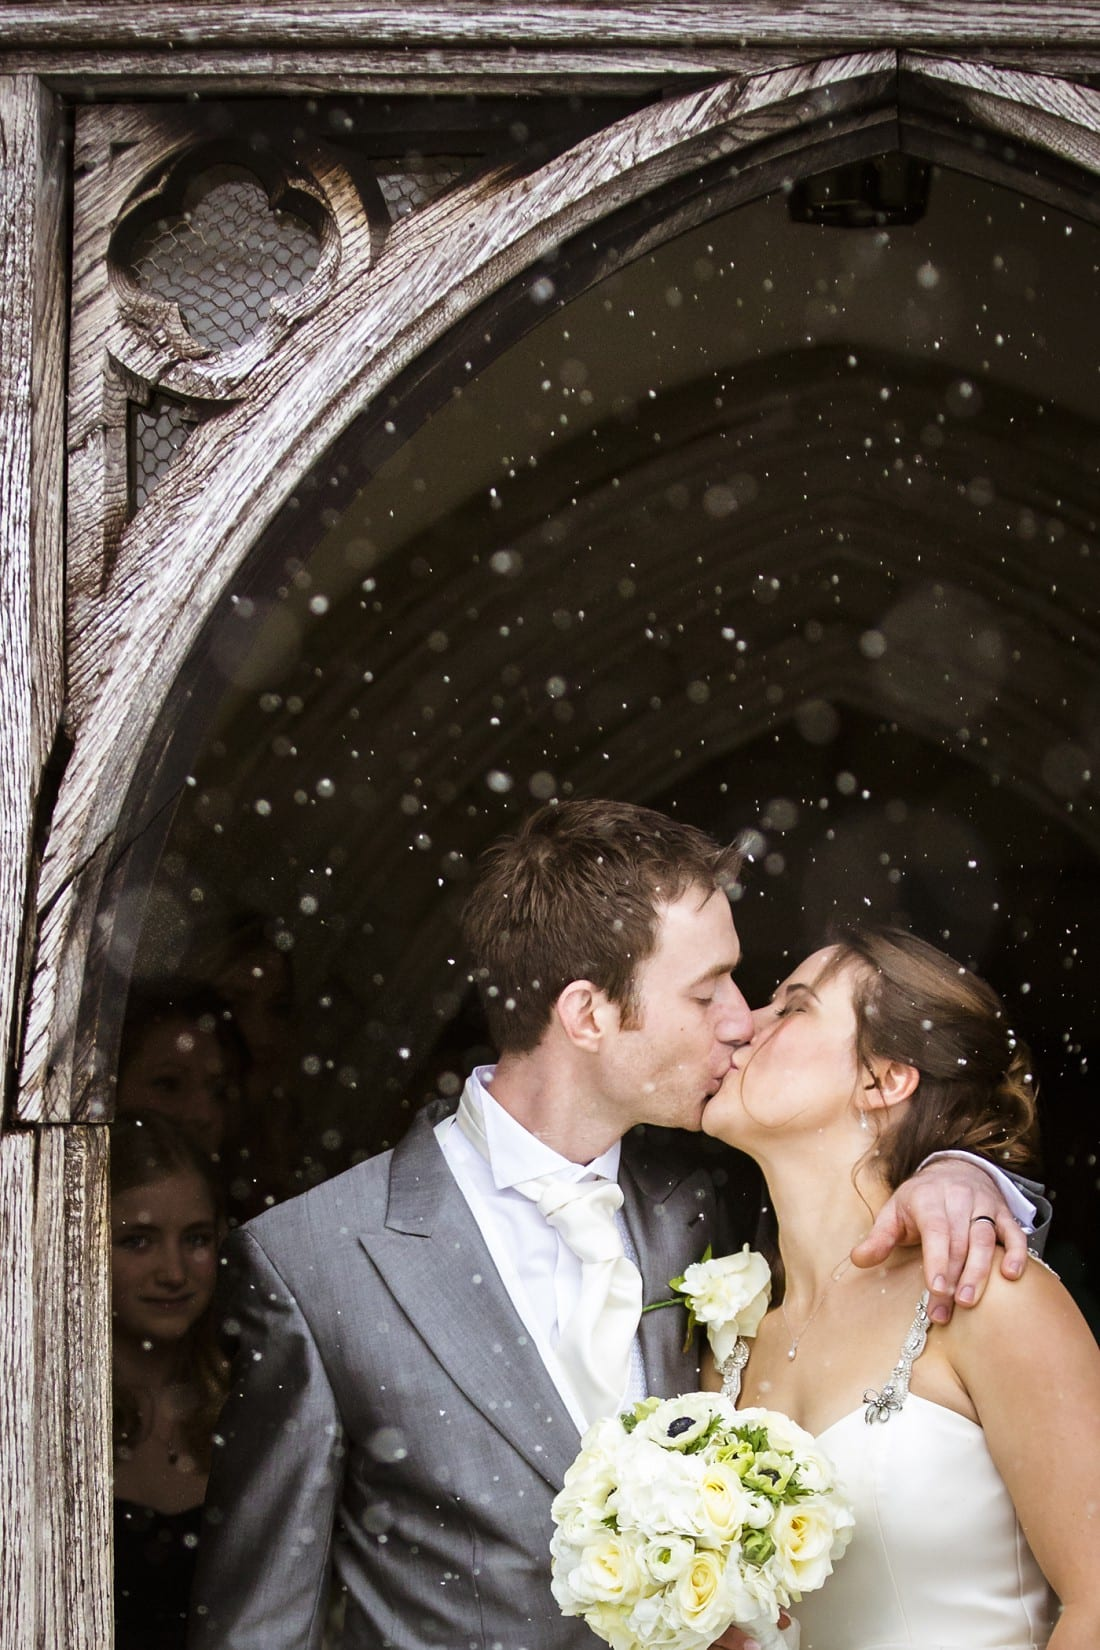 Susanna and Russ_snowy wedding at Buckland village church_0022